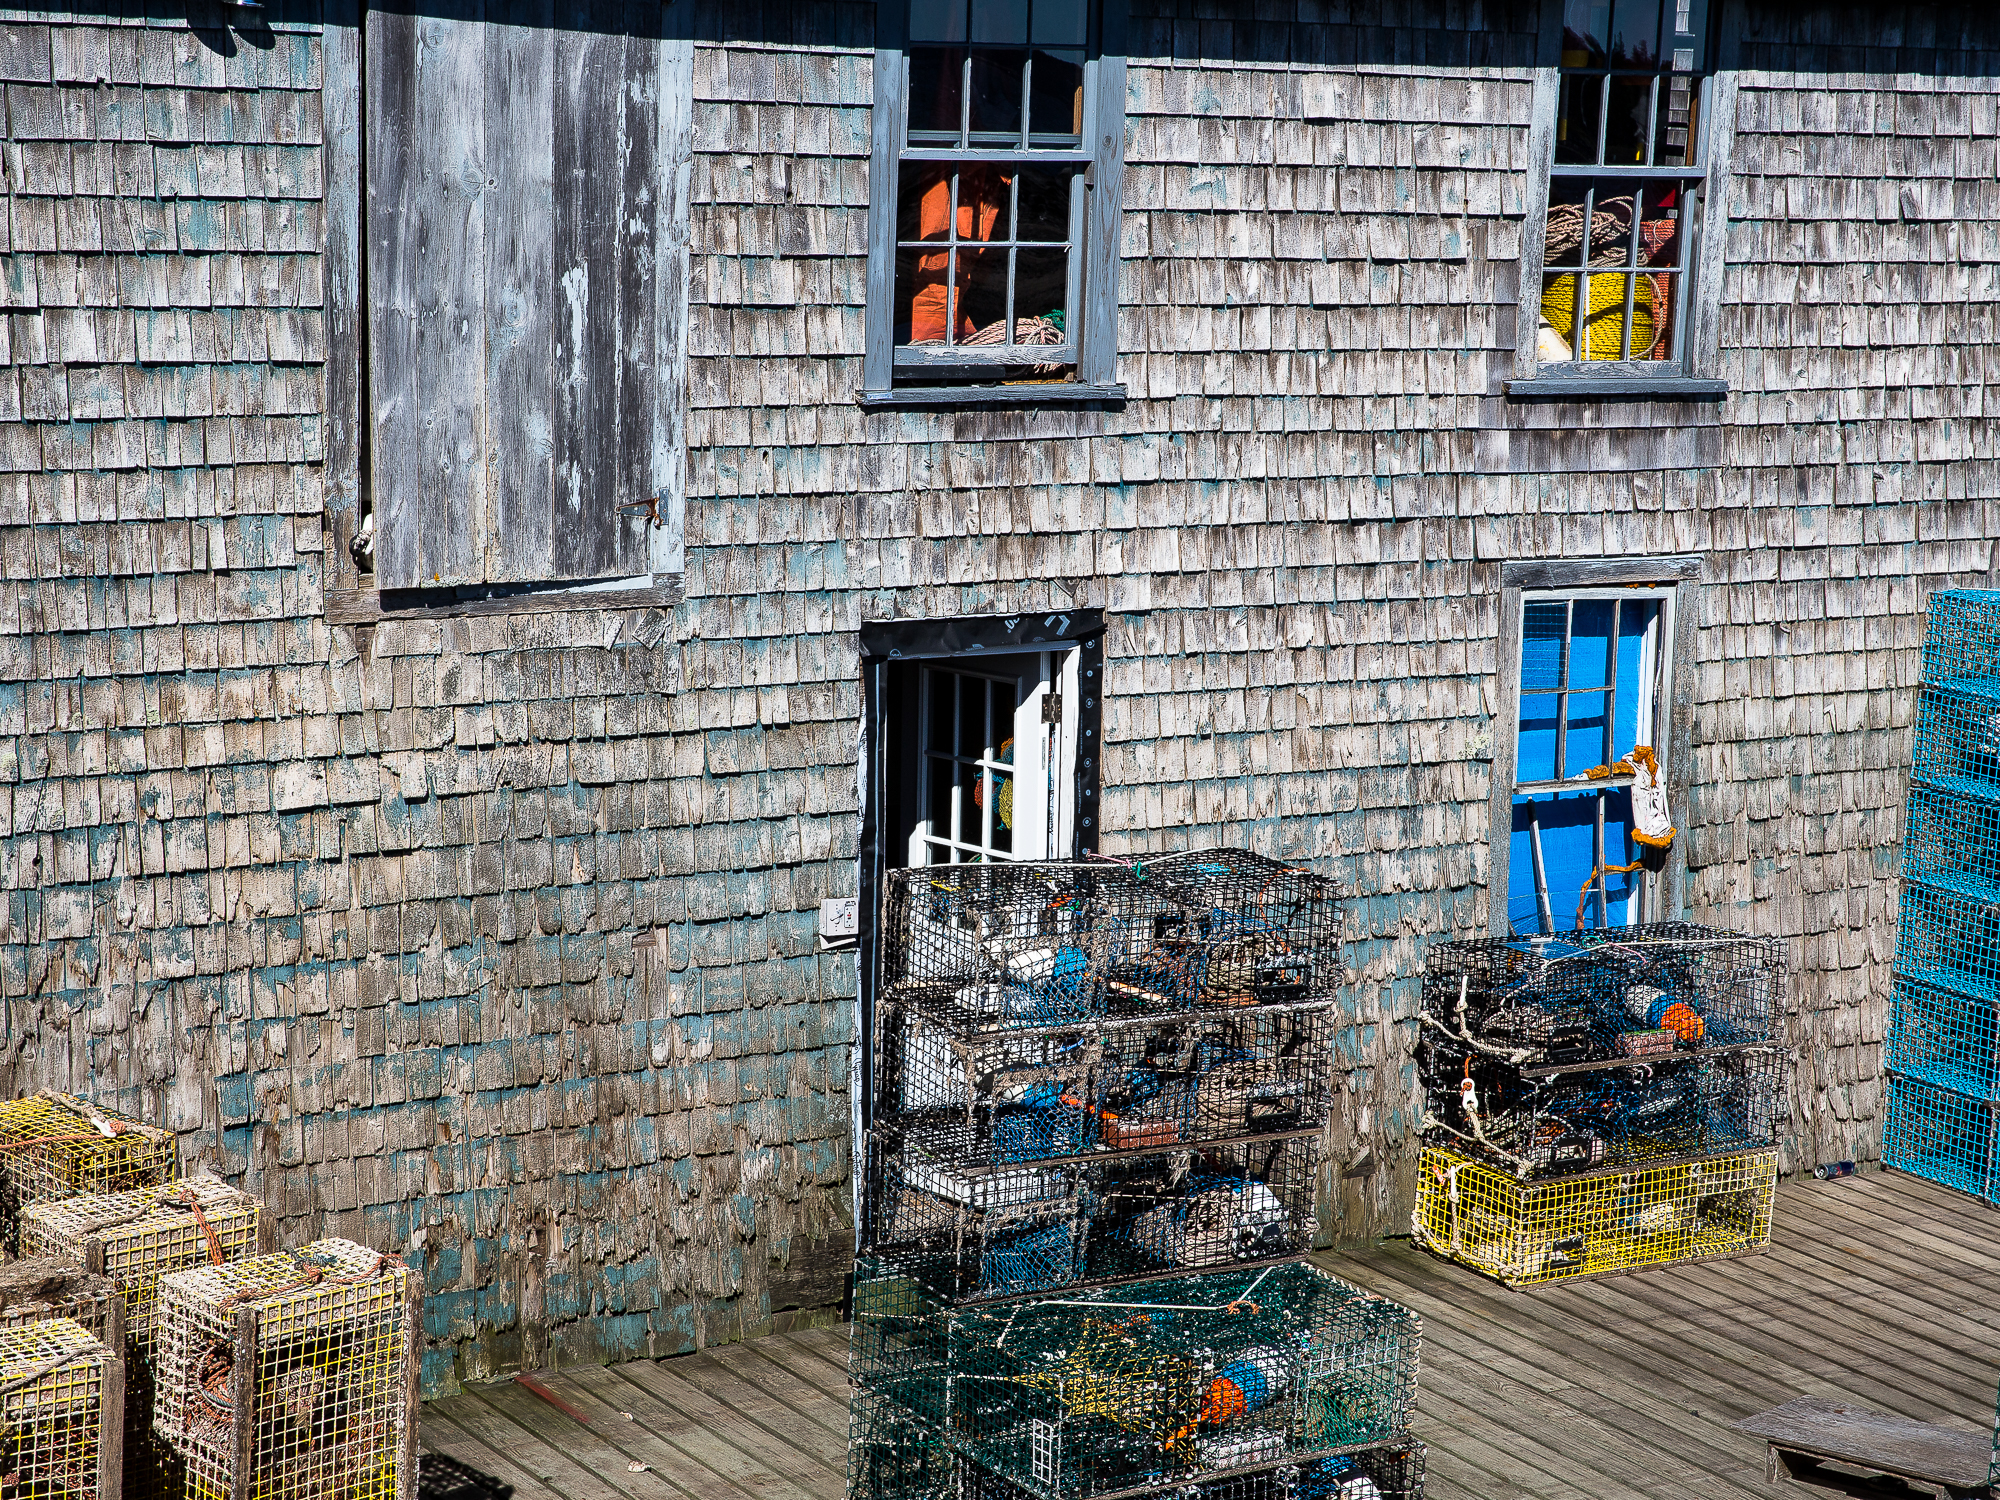 An old fishing storehouse on Mount Desert Island, Maine, USA